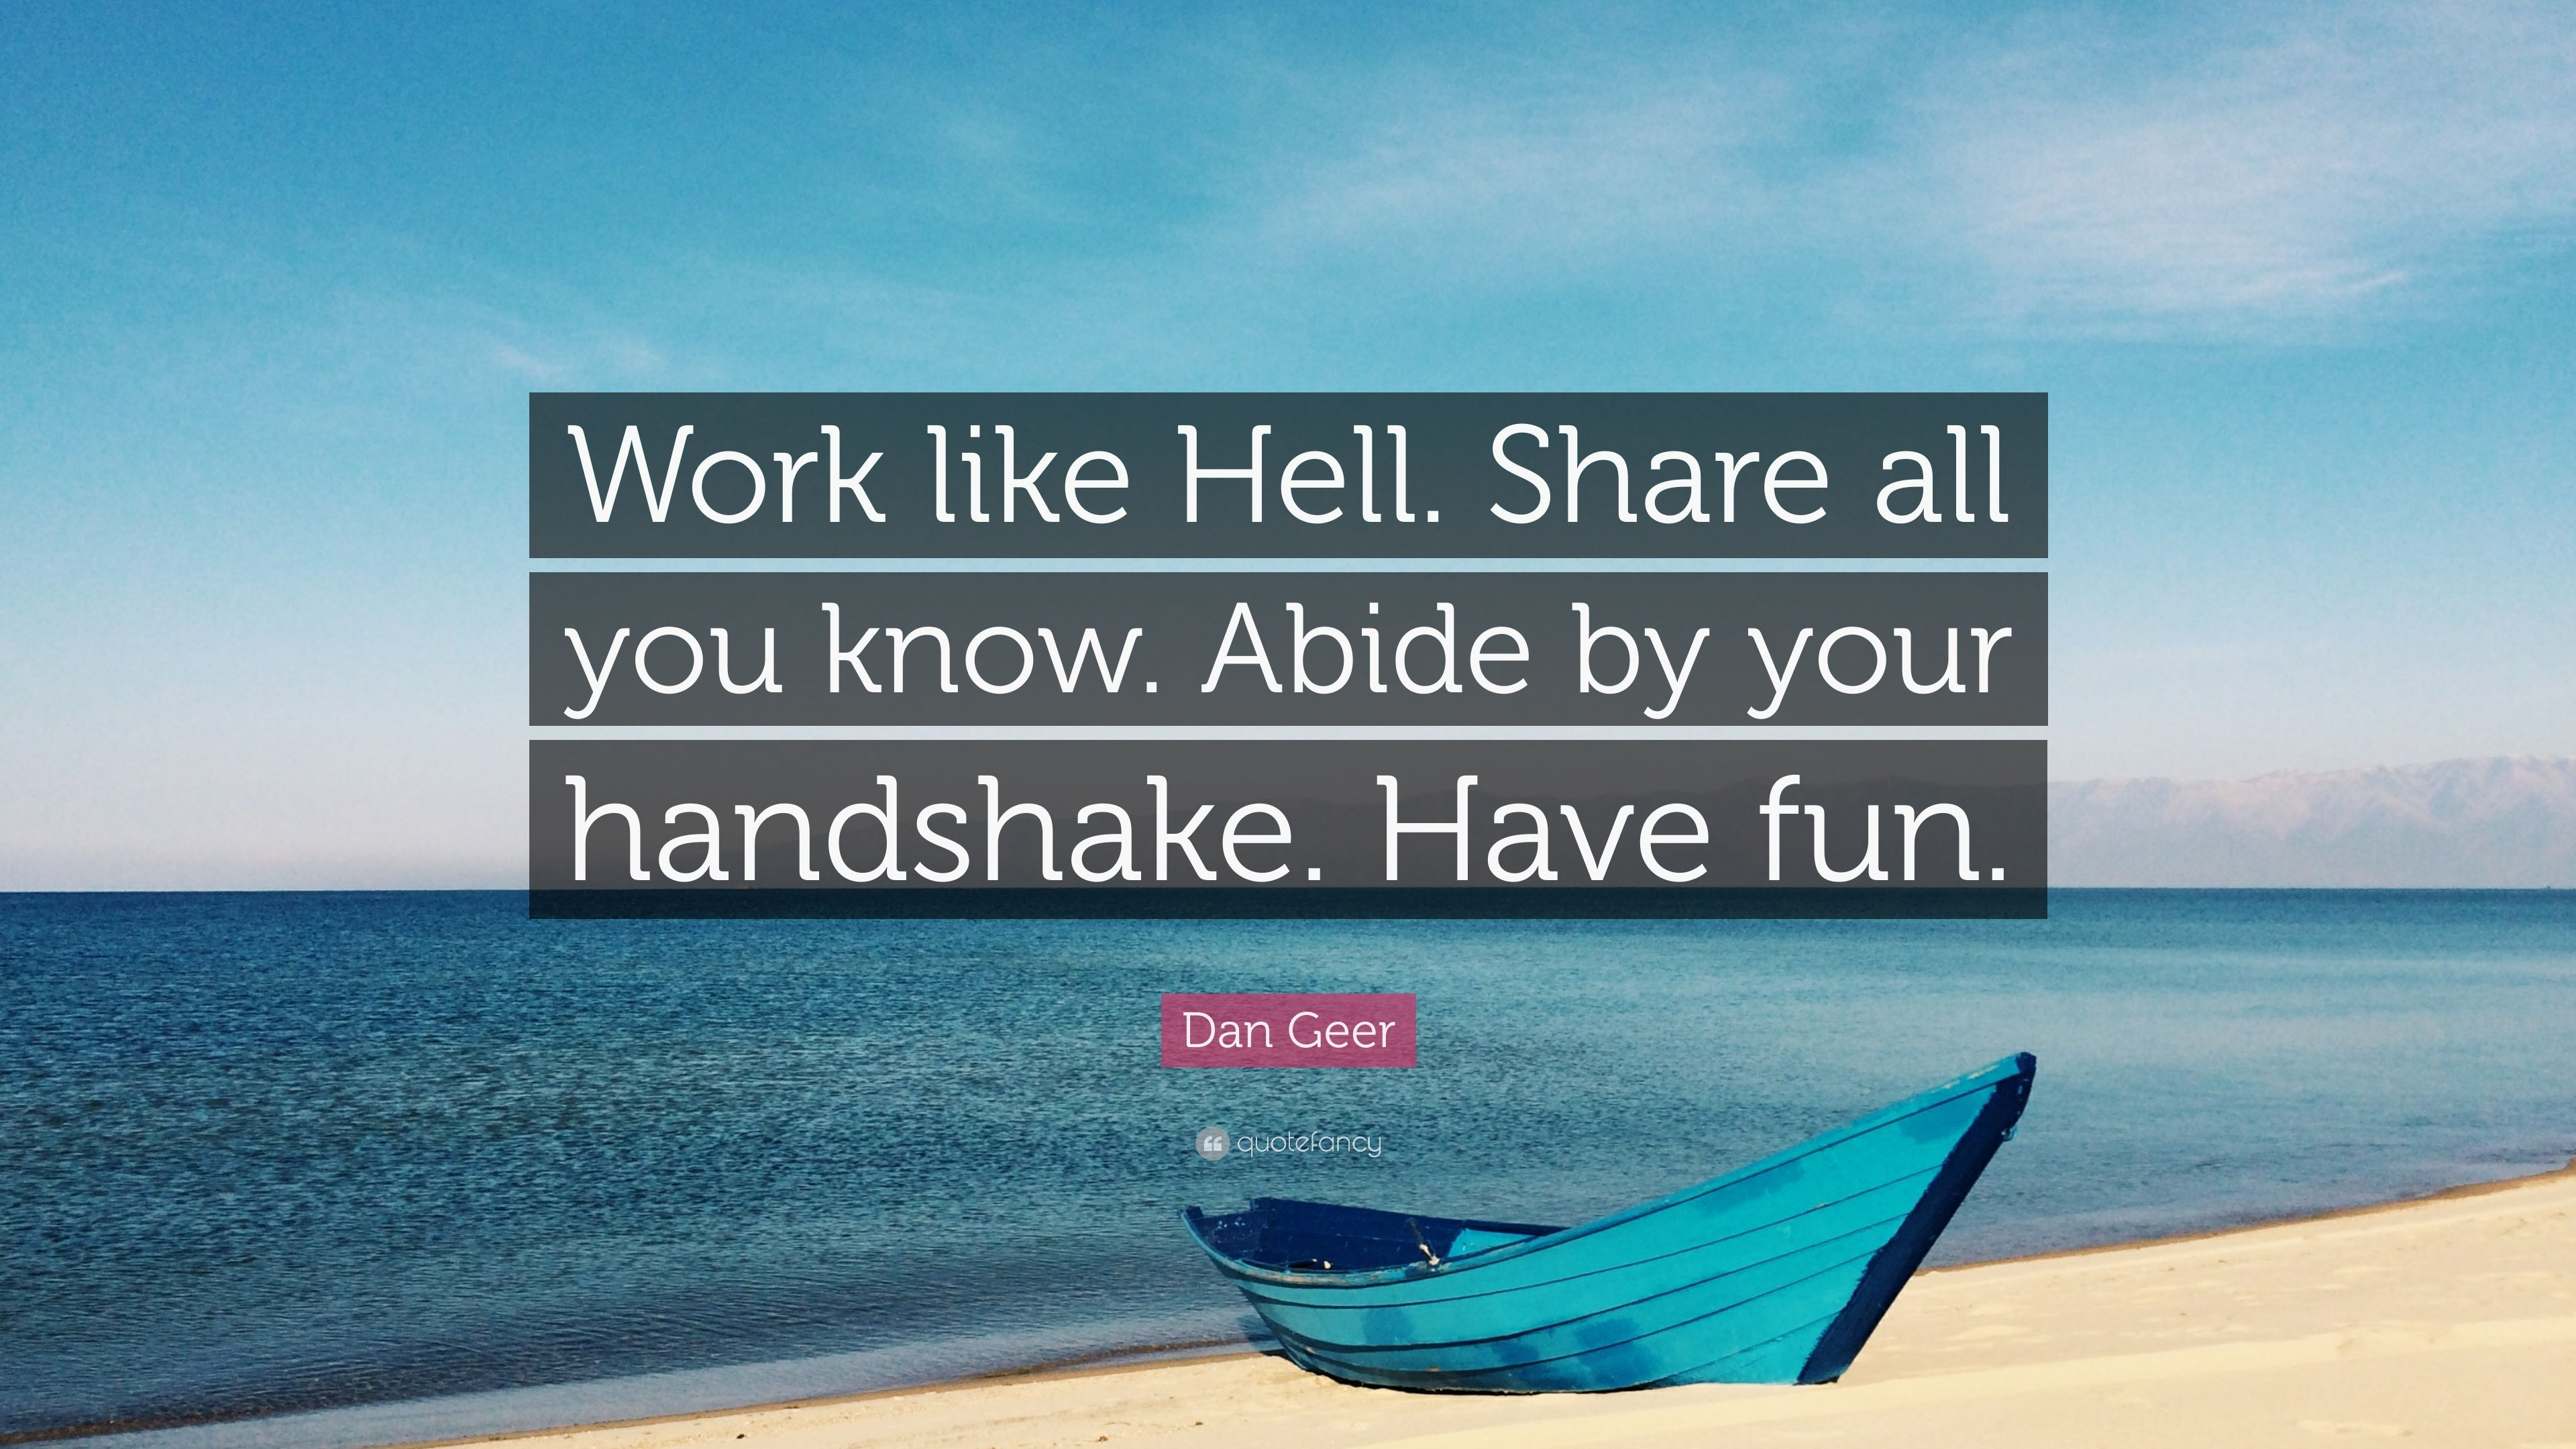 dan geer quote work like hell share all you know abide